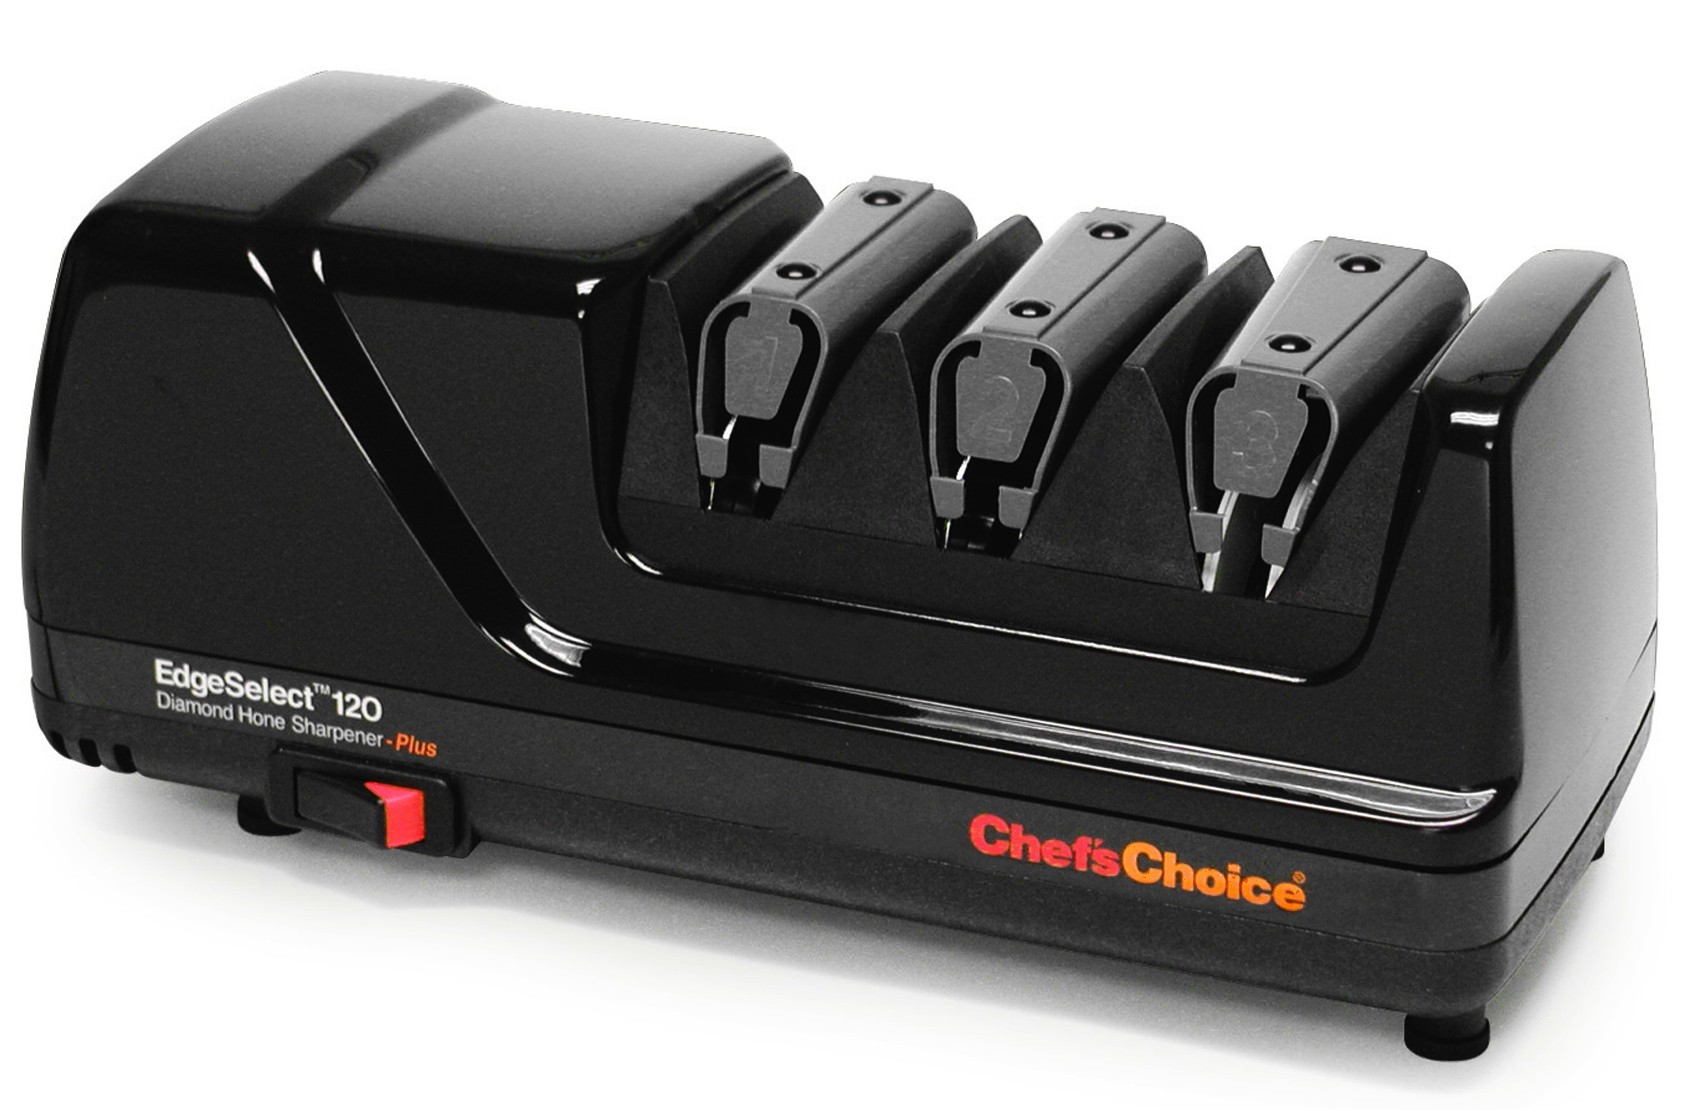 Chef's Choice Black EdgeSelect Professional Electric Knife Sharpener #120